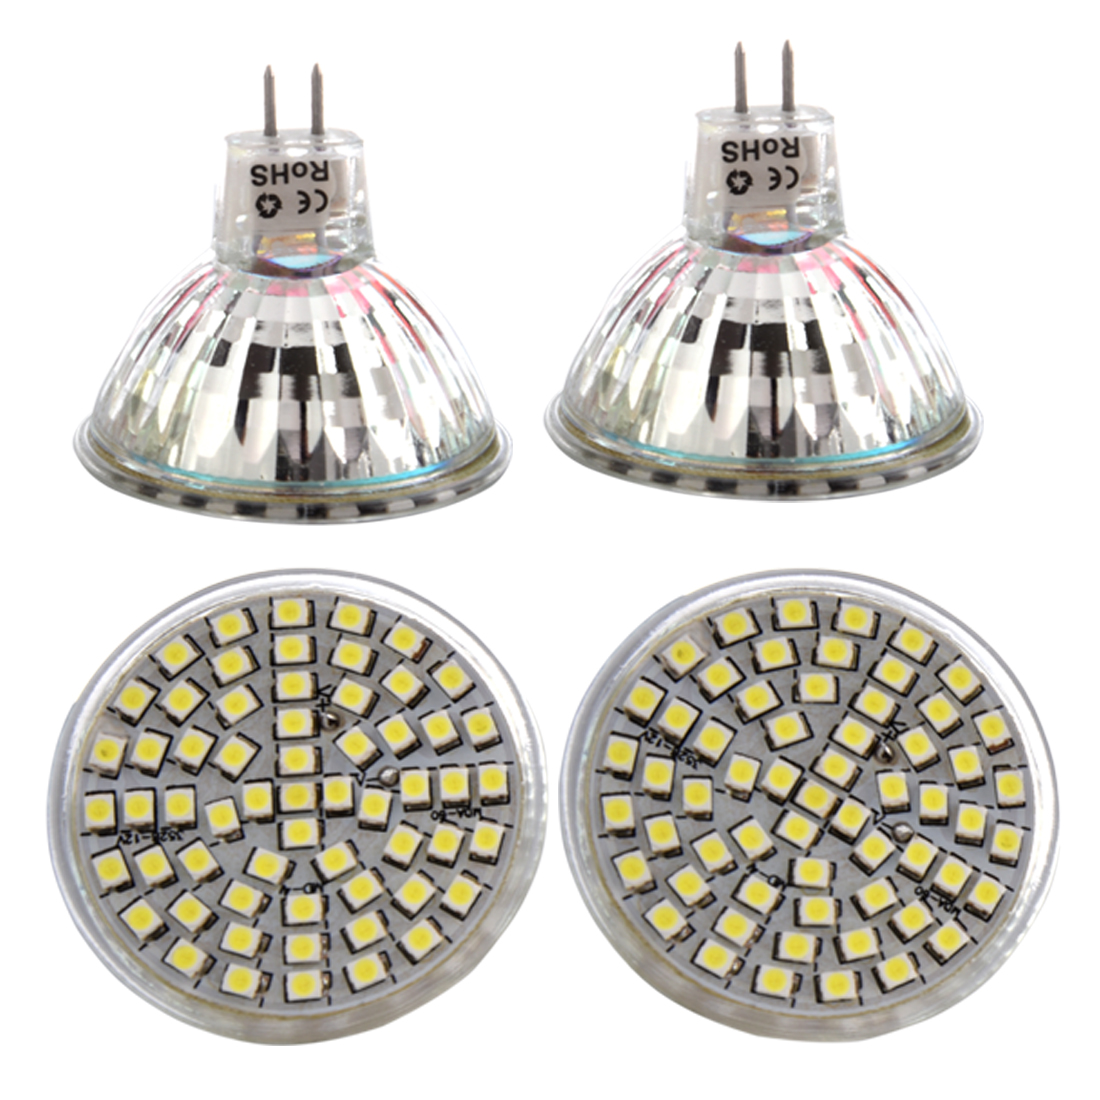 цена на 4x MR16 GU5.3 White 60 SMD 3528 LED Energy Saving Spotlight Light Lamp Bulb 12V